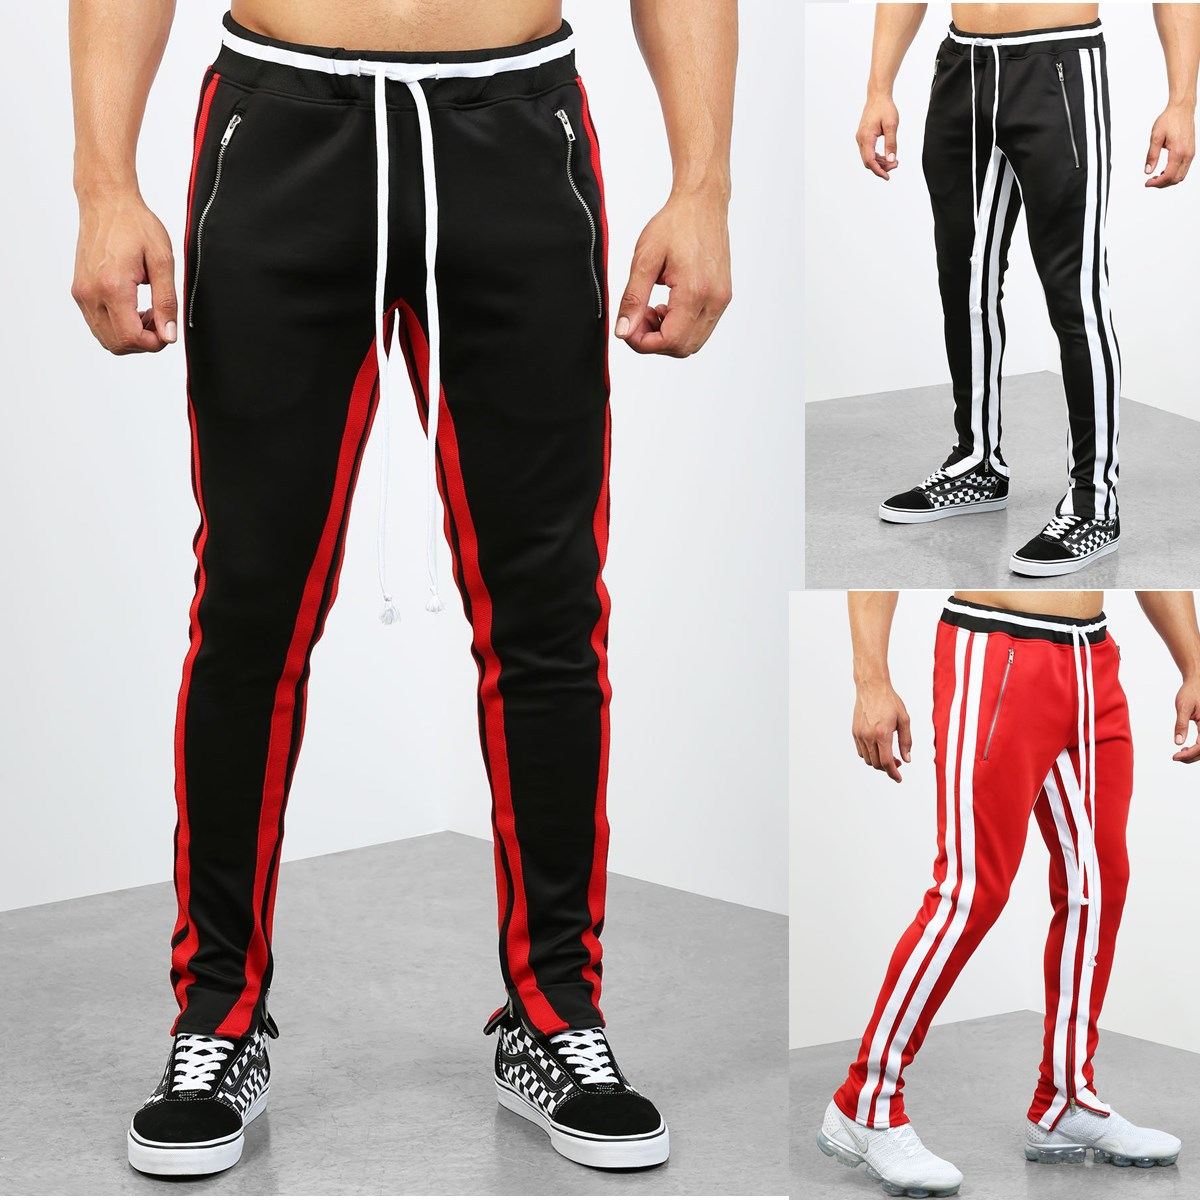 Men Fashion 2019 Casual Athletic Pants Stripes Hip Hop Fitness Foot Mouth Zipper Pocket Patch Pocket Joint Trousers